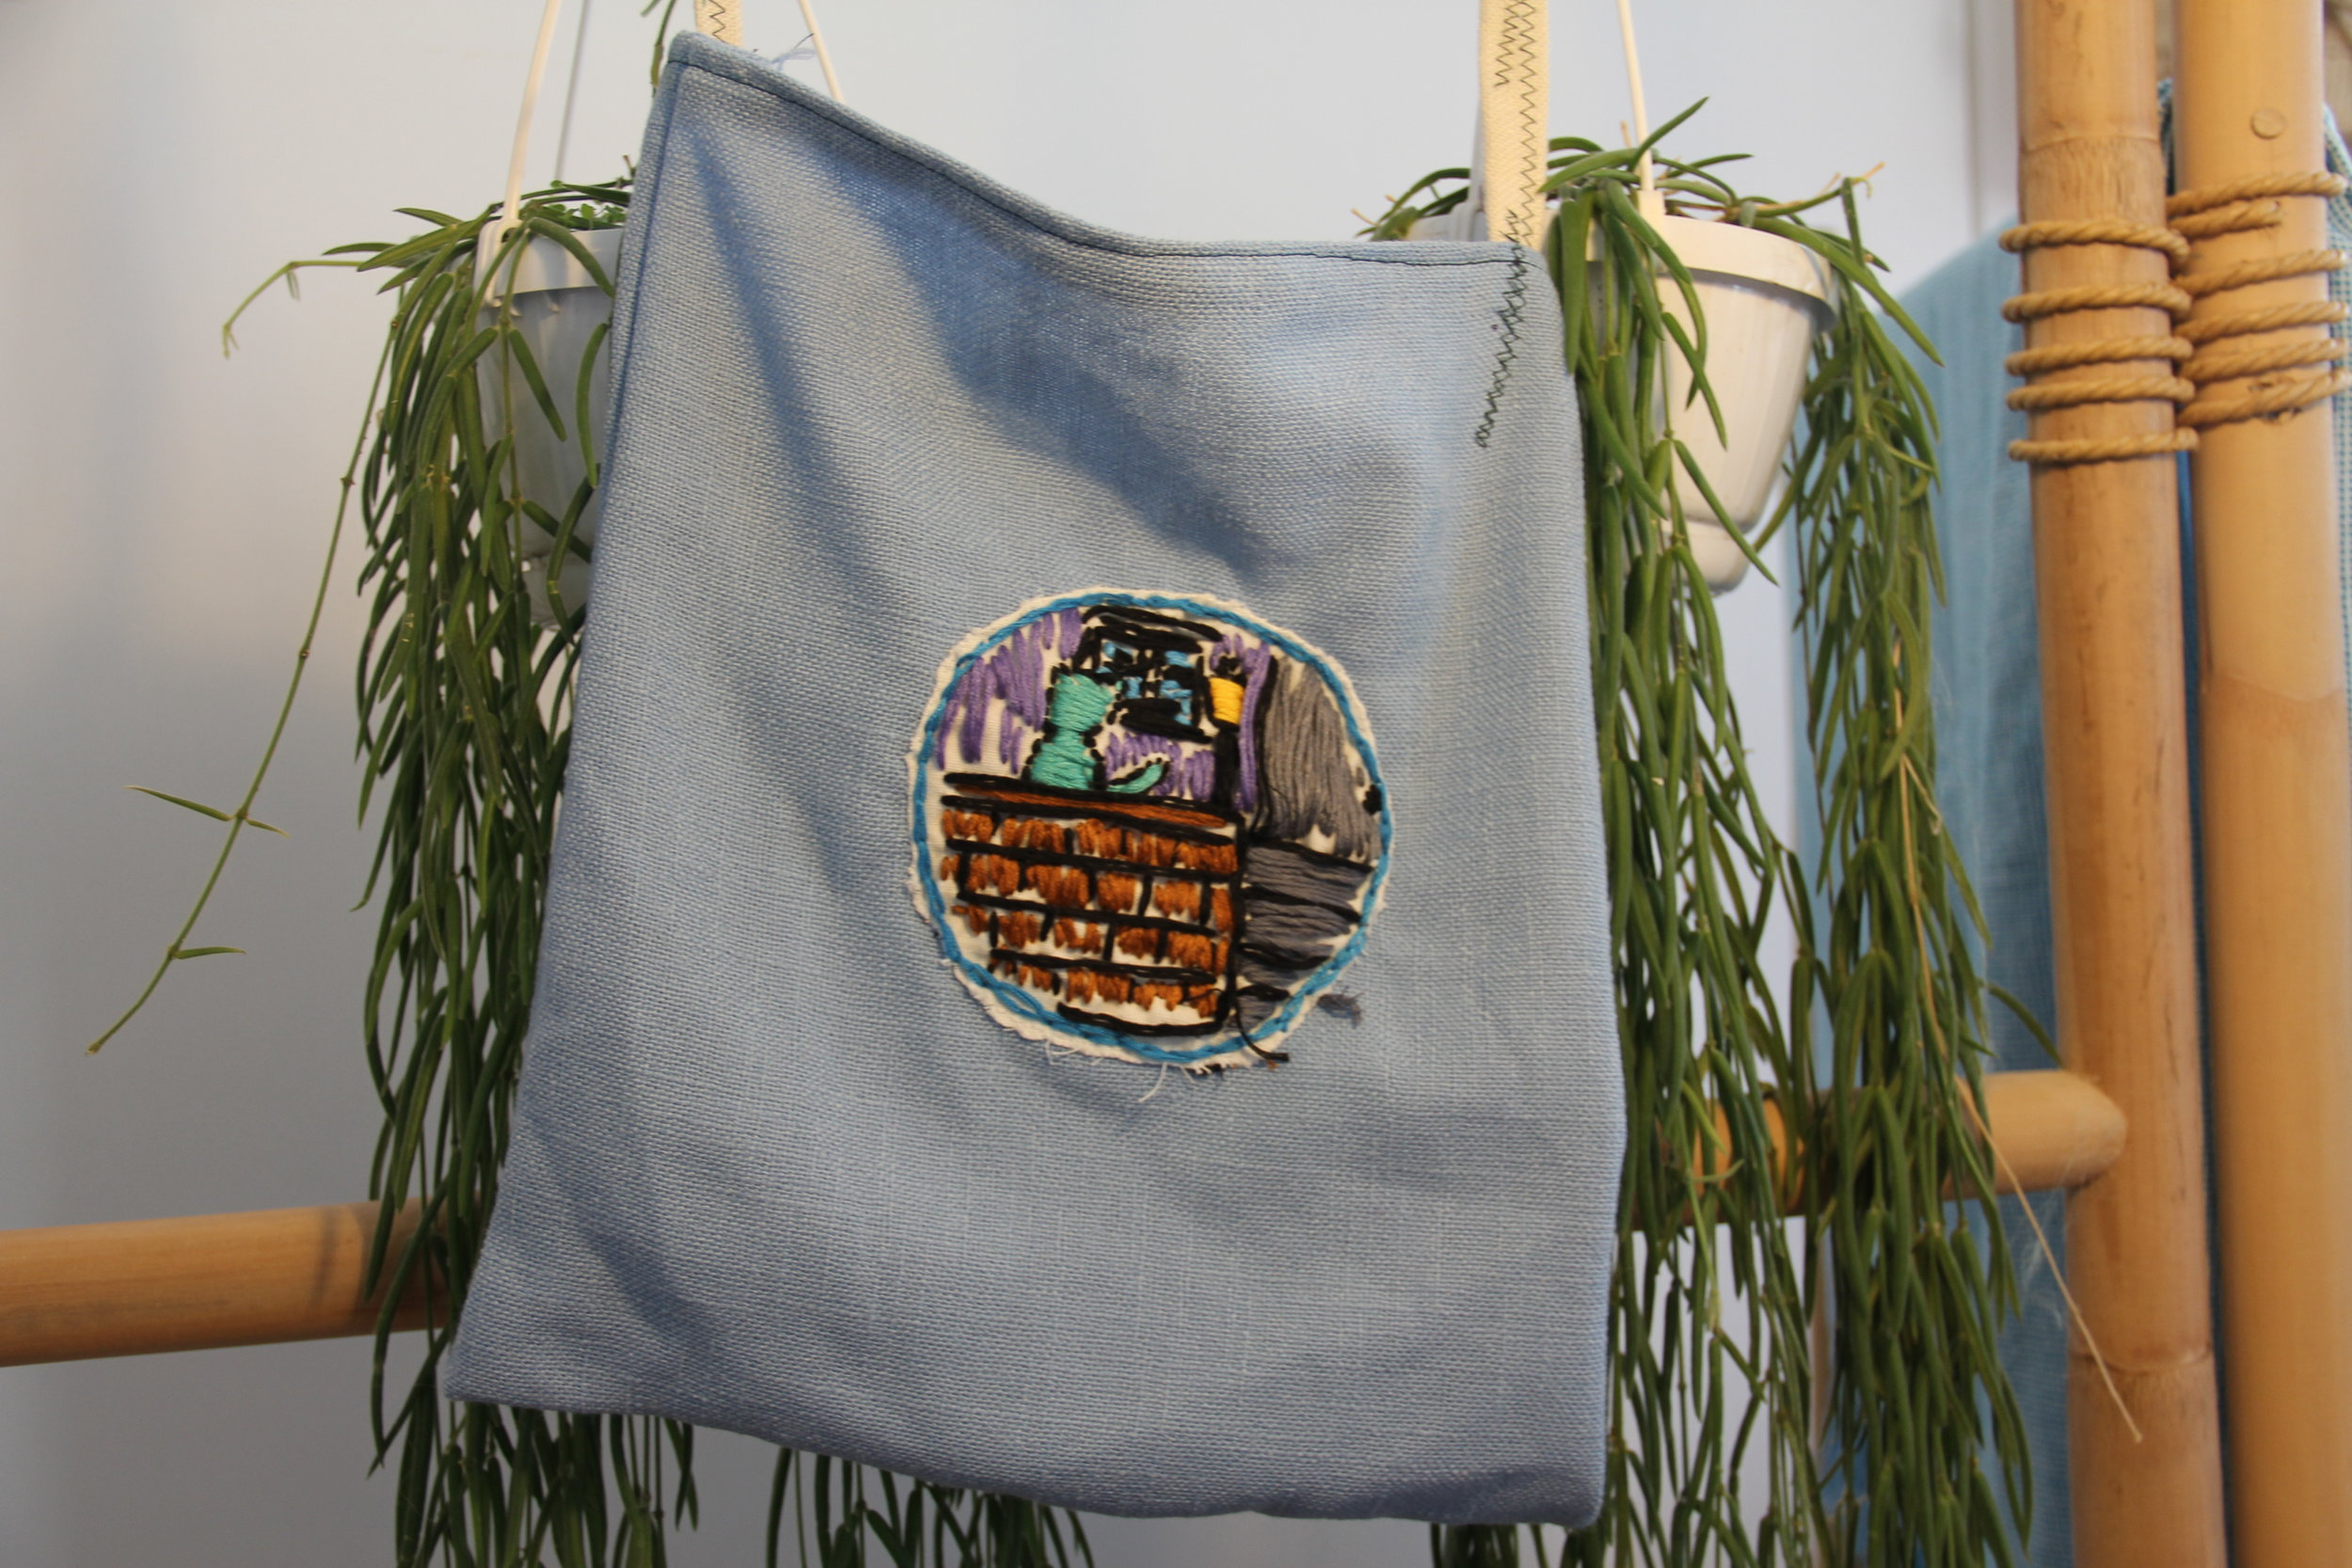 House of Cats Embroidered Tote  handmade by Sophia